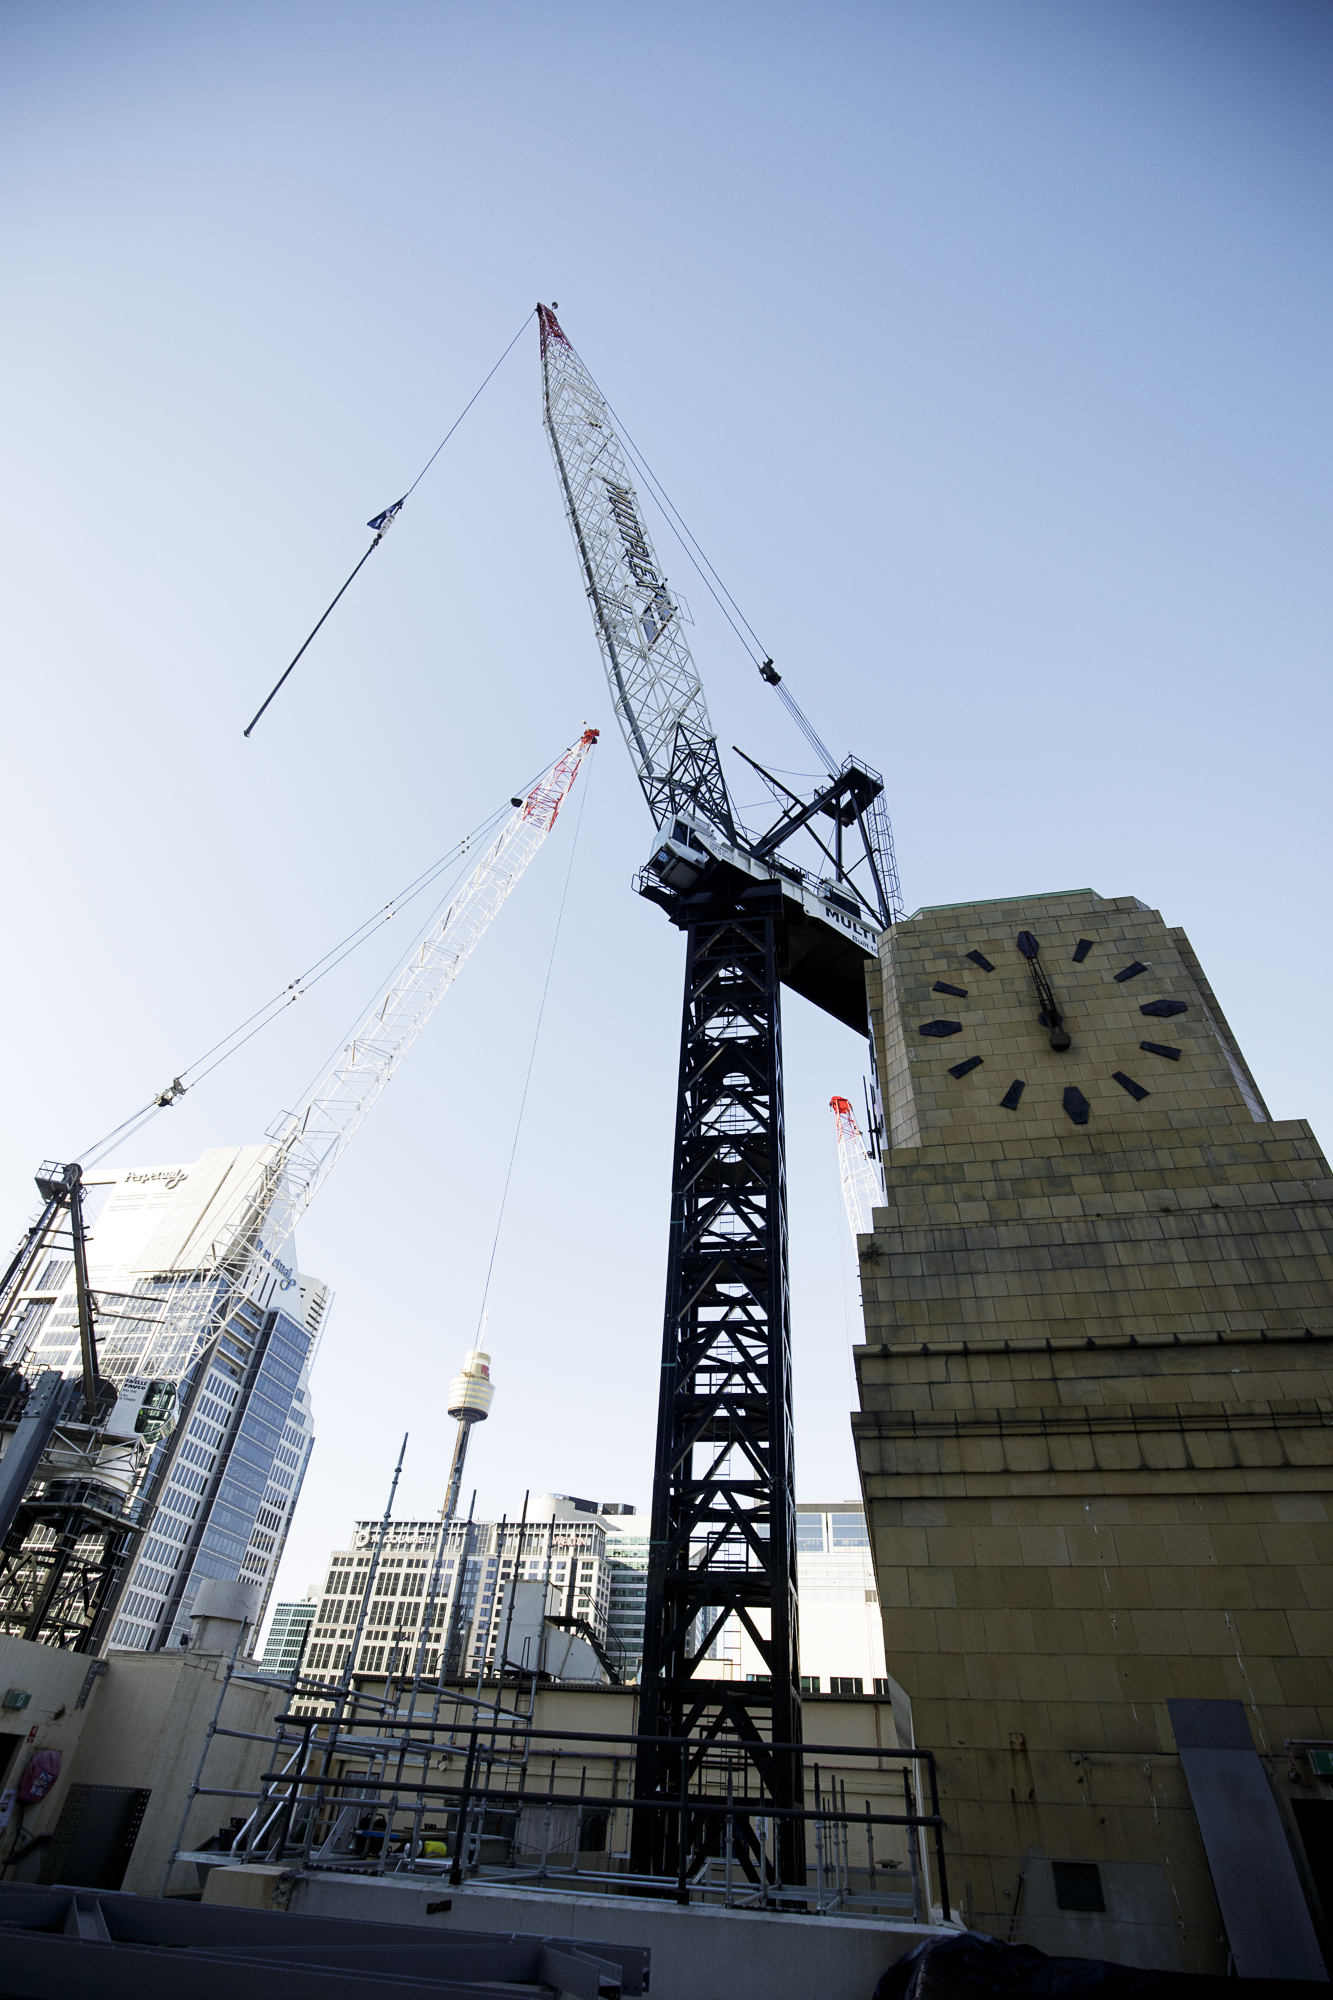 Tower - shell house tower crane operational